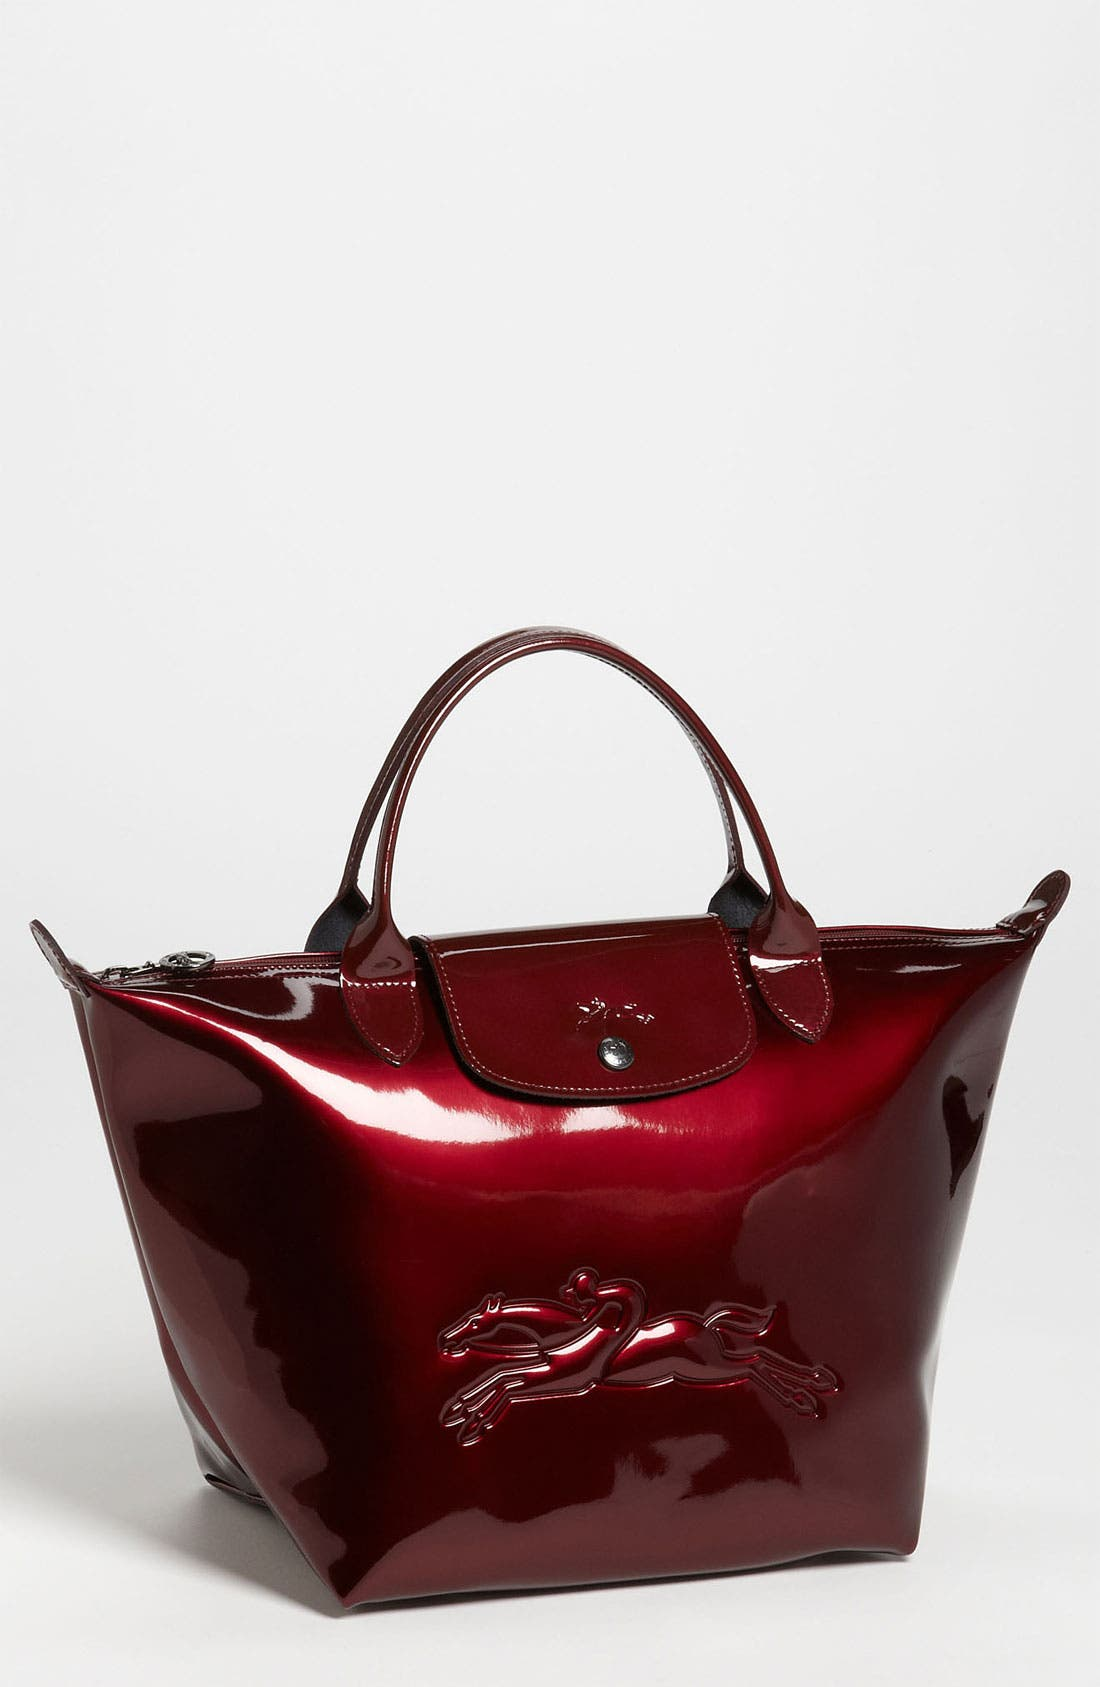 Main Image - Longchamp 'Victoire' Small Tote